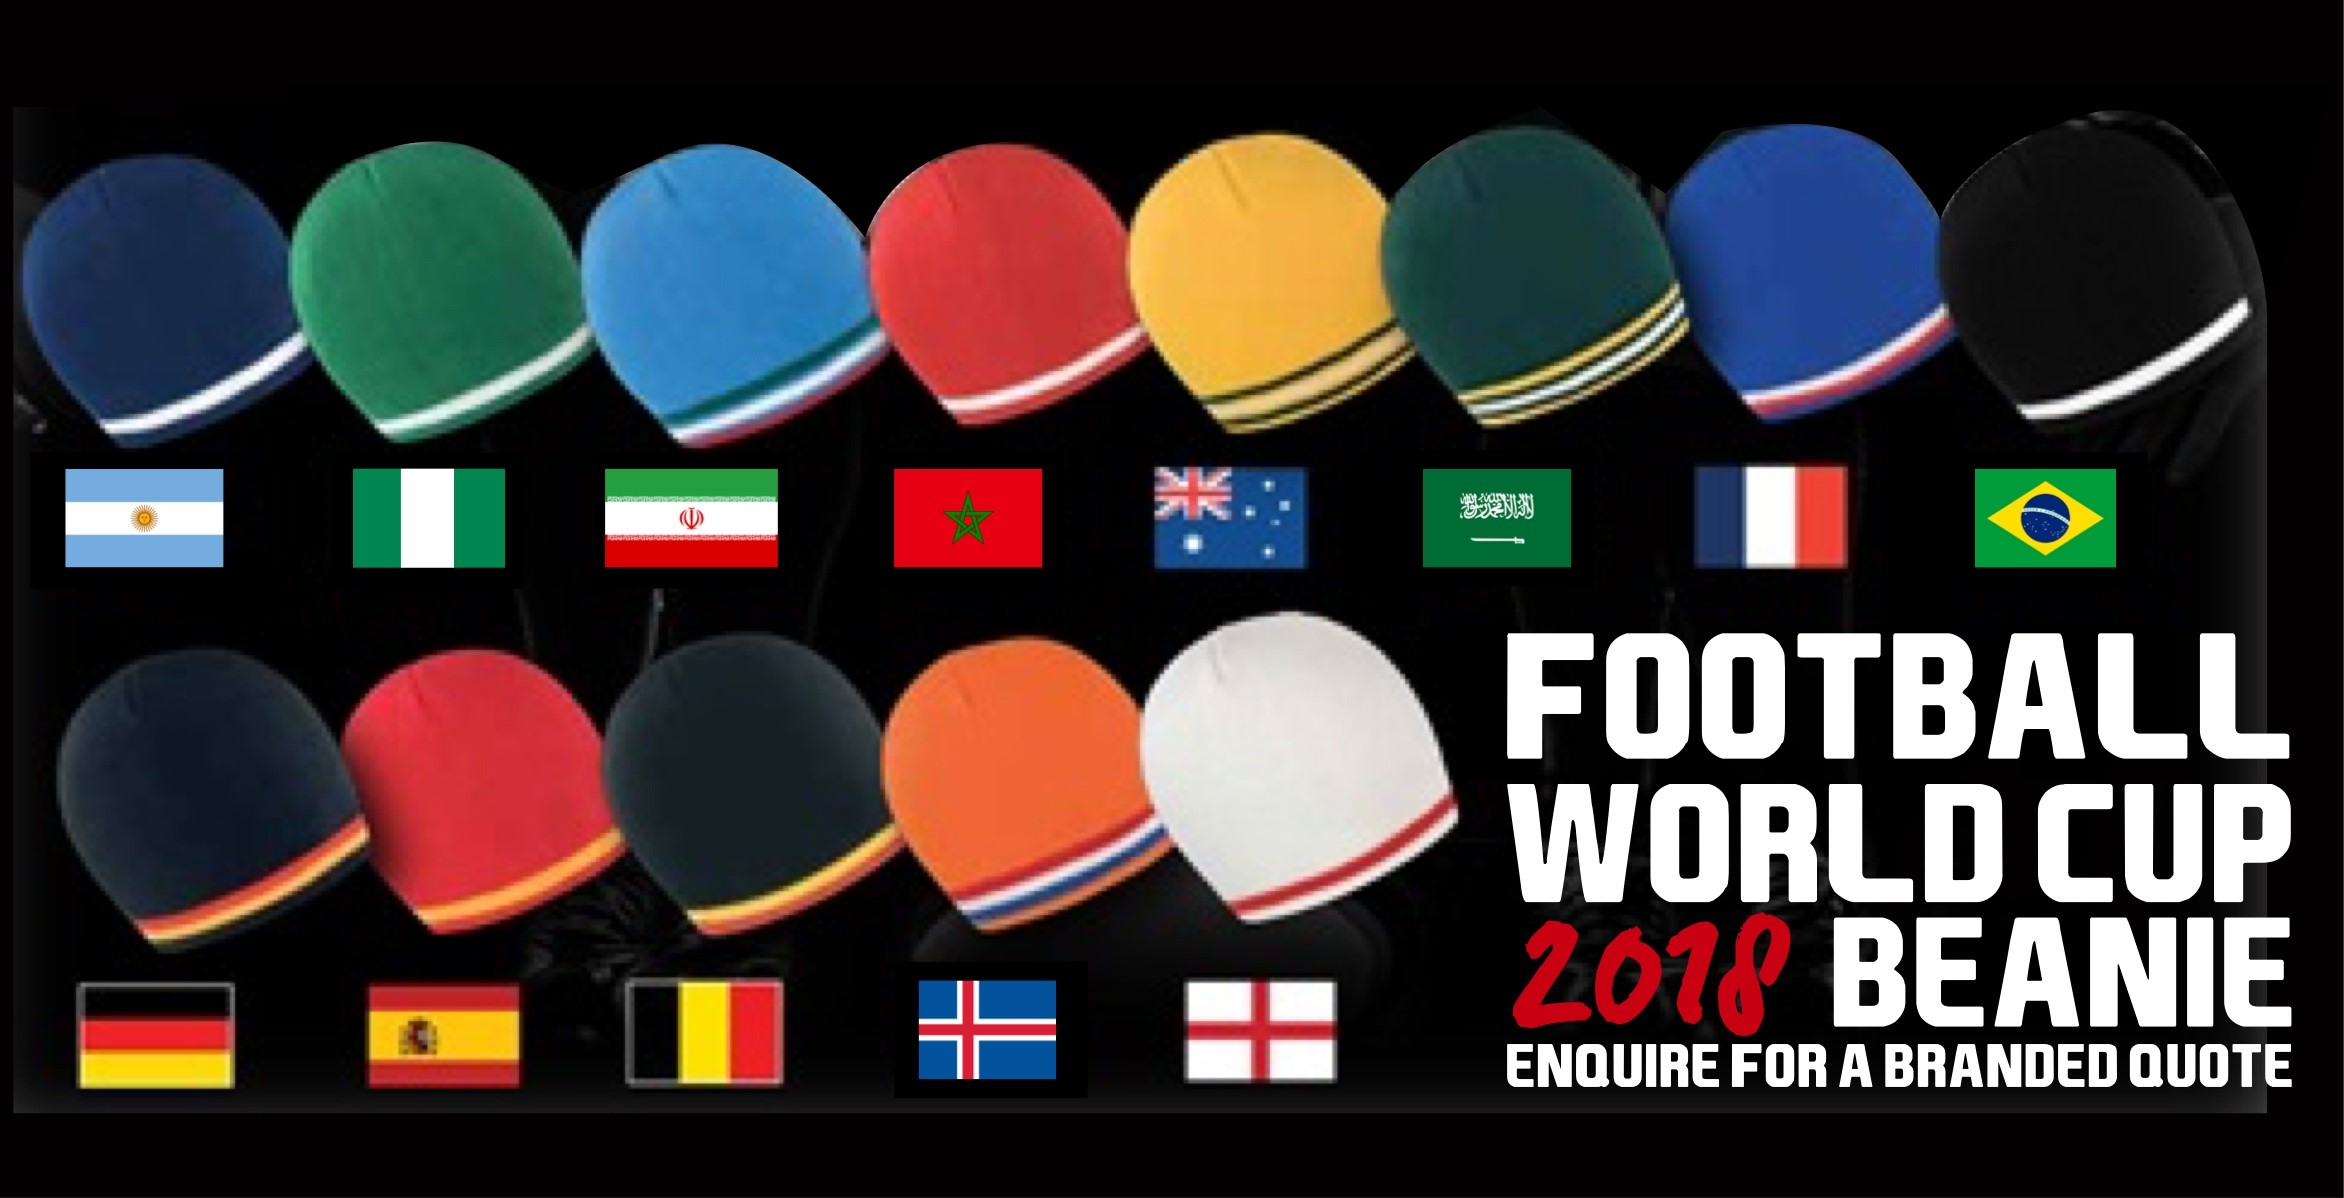 World Cup Beanies